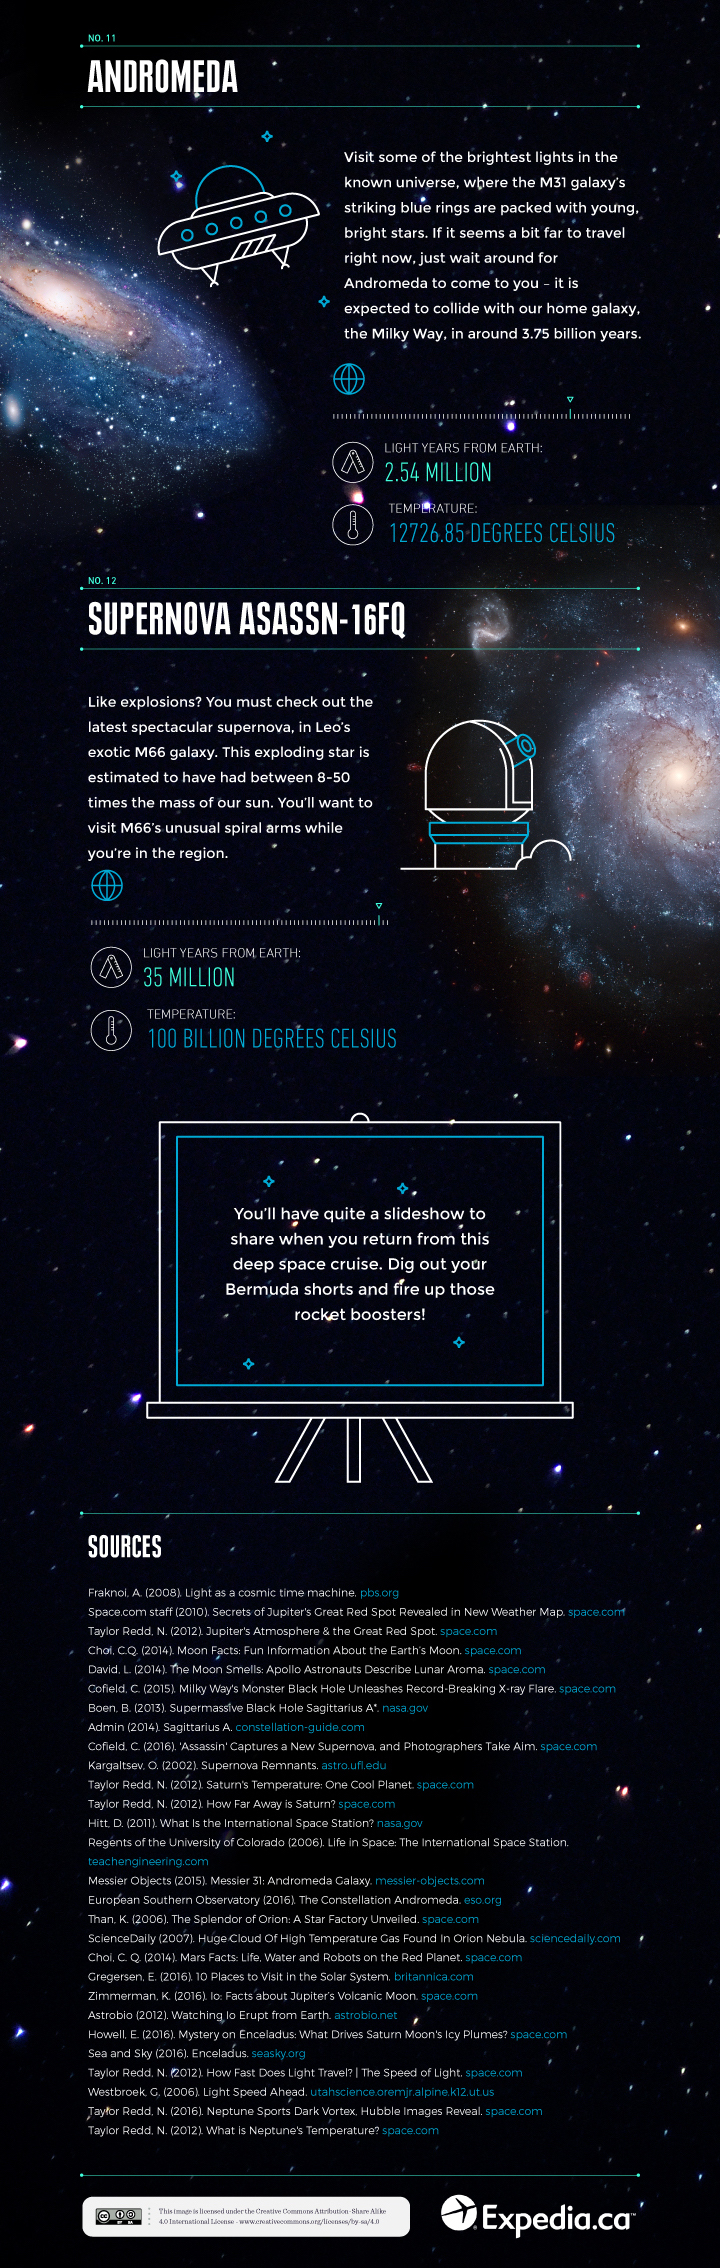 A_space_travelers_guide-1 4